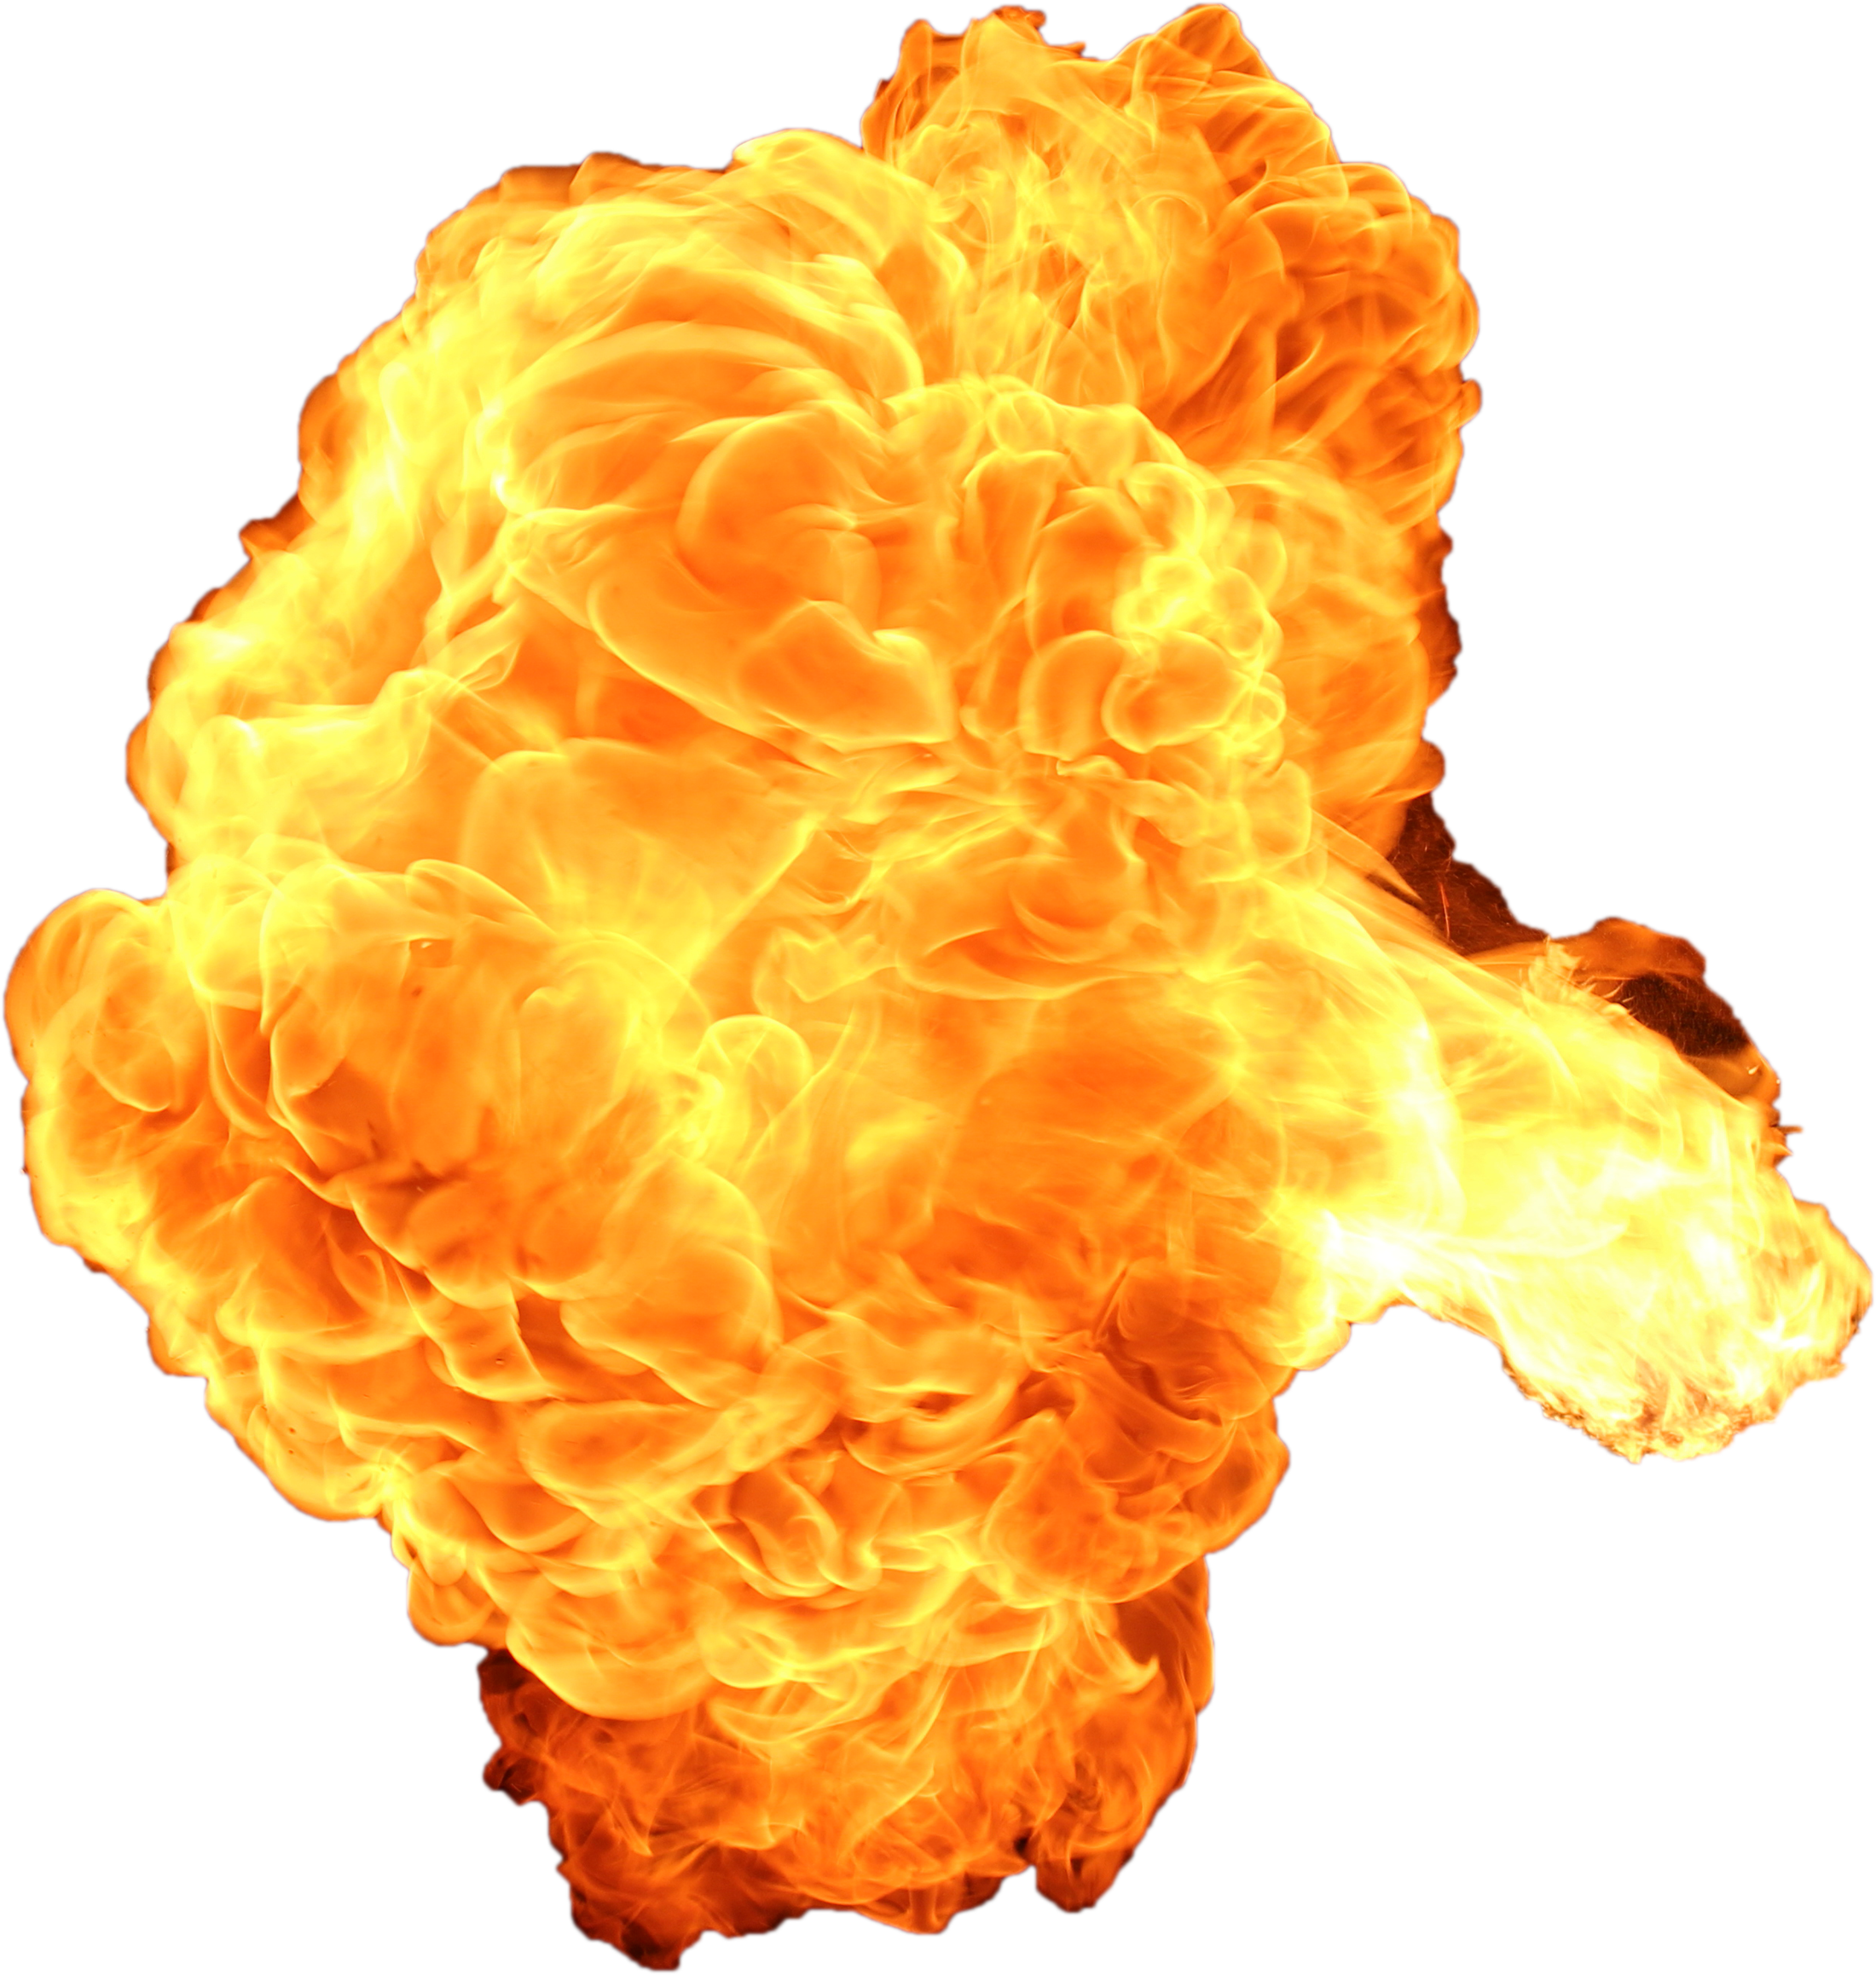 Explosion Transparent PNG Picture 14 image #45937